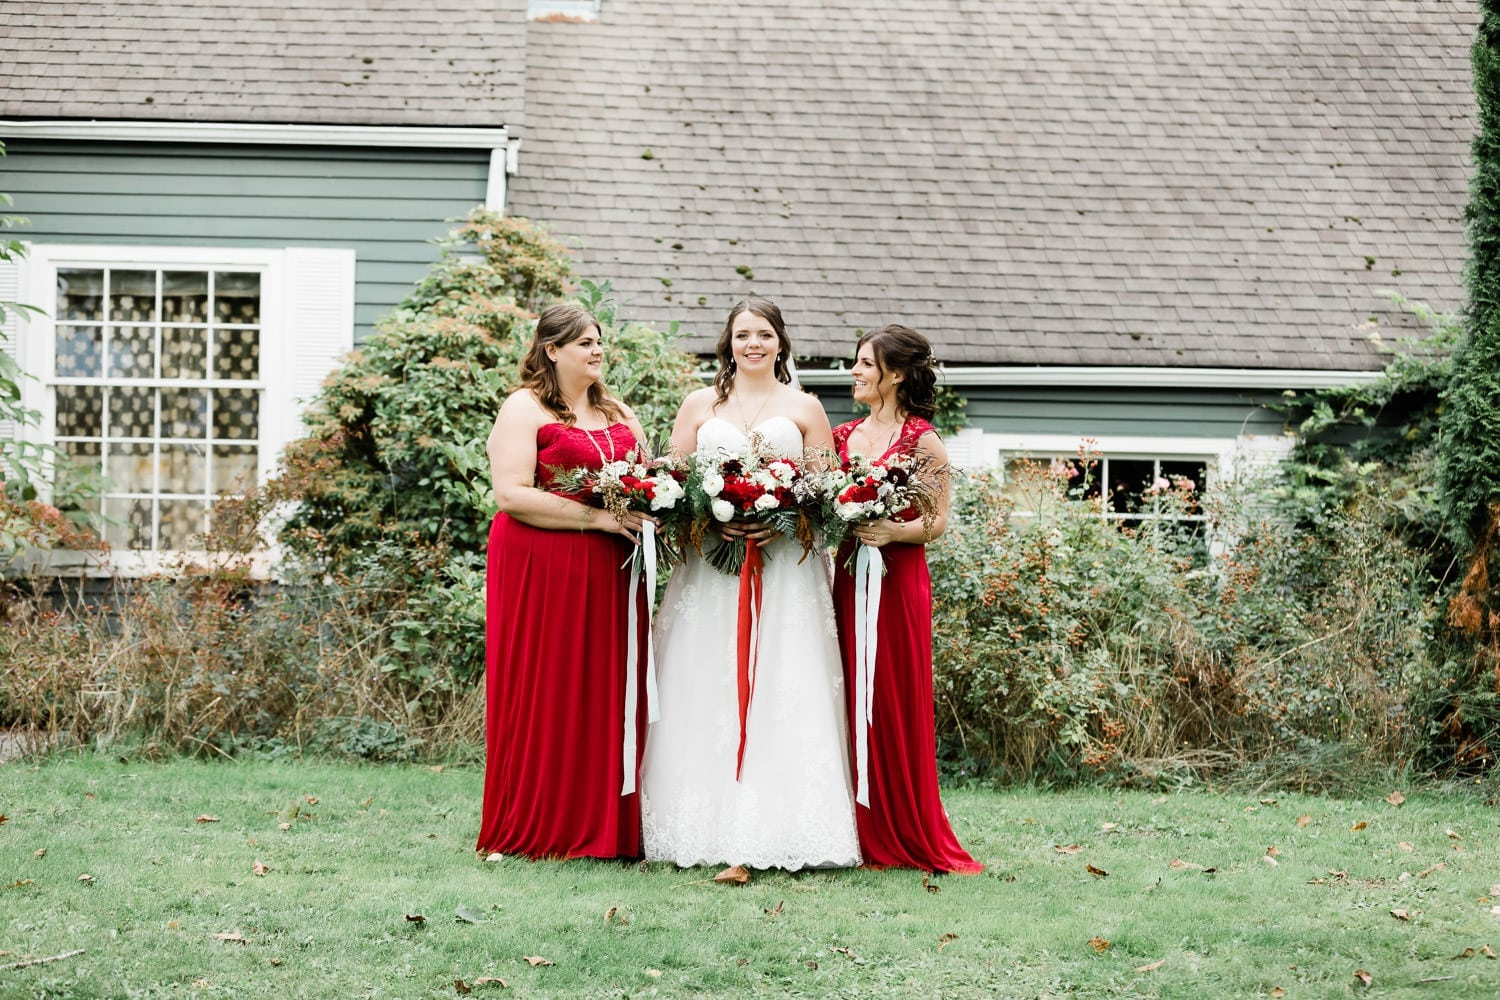 Bride and bridesmates | Vancouver wedding photographer